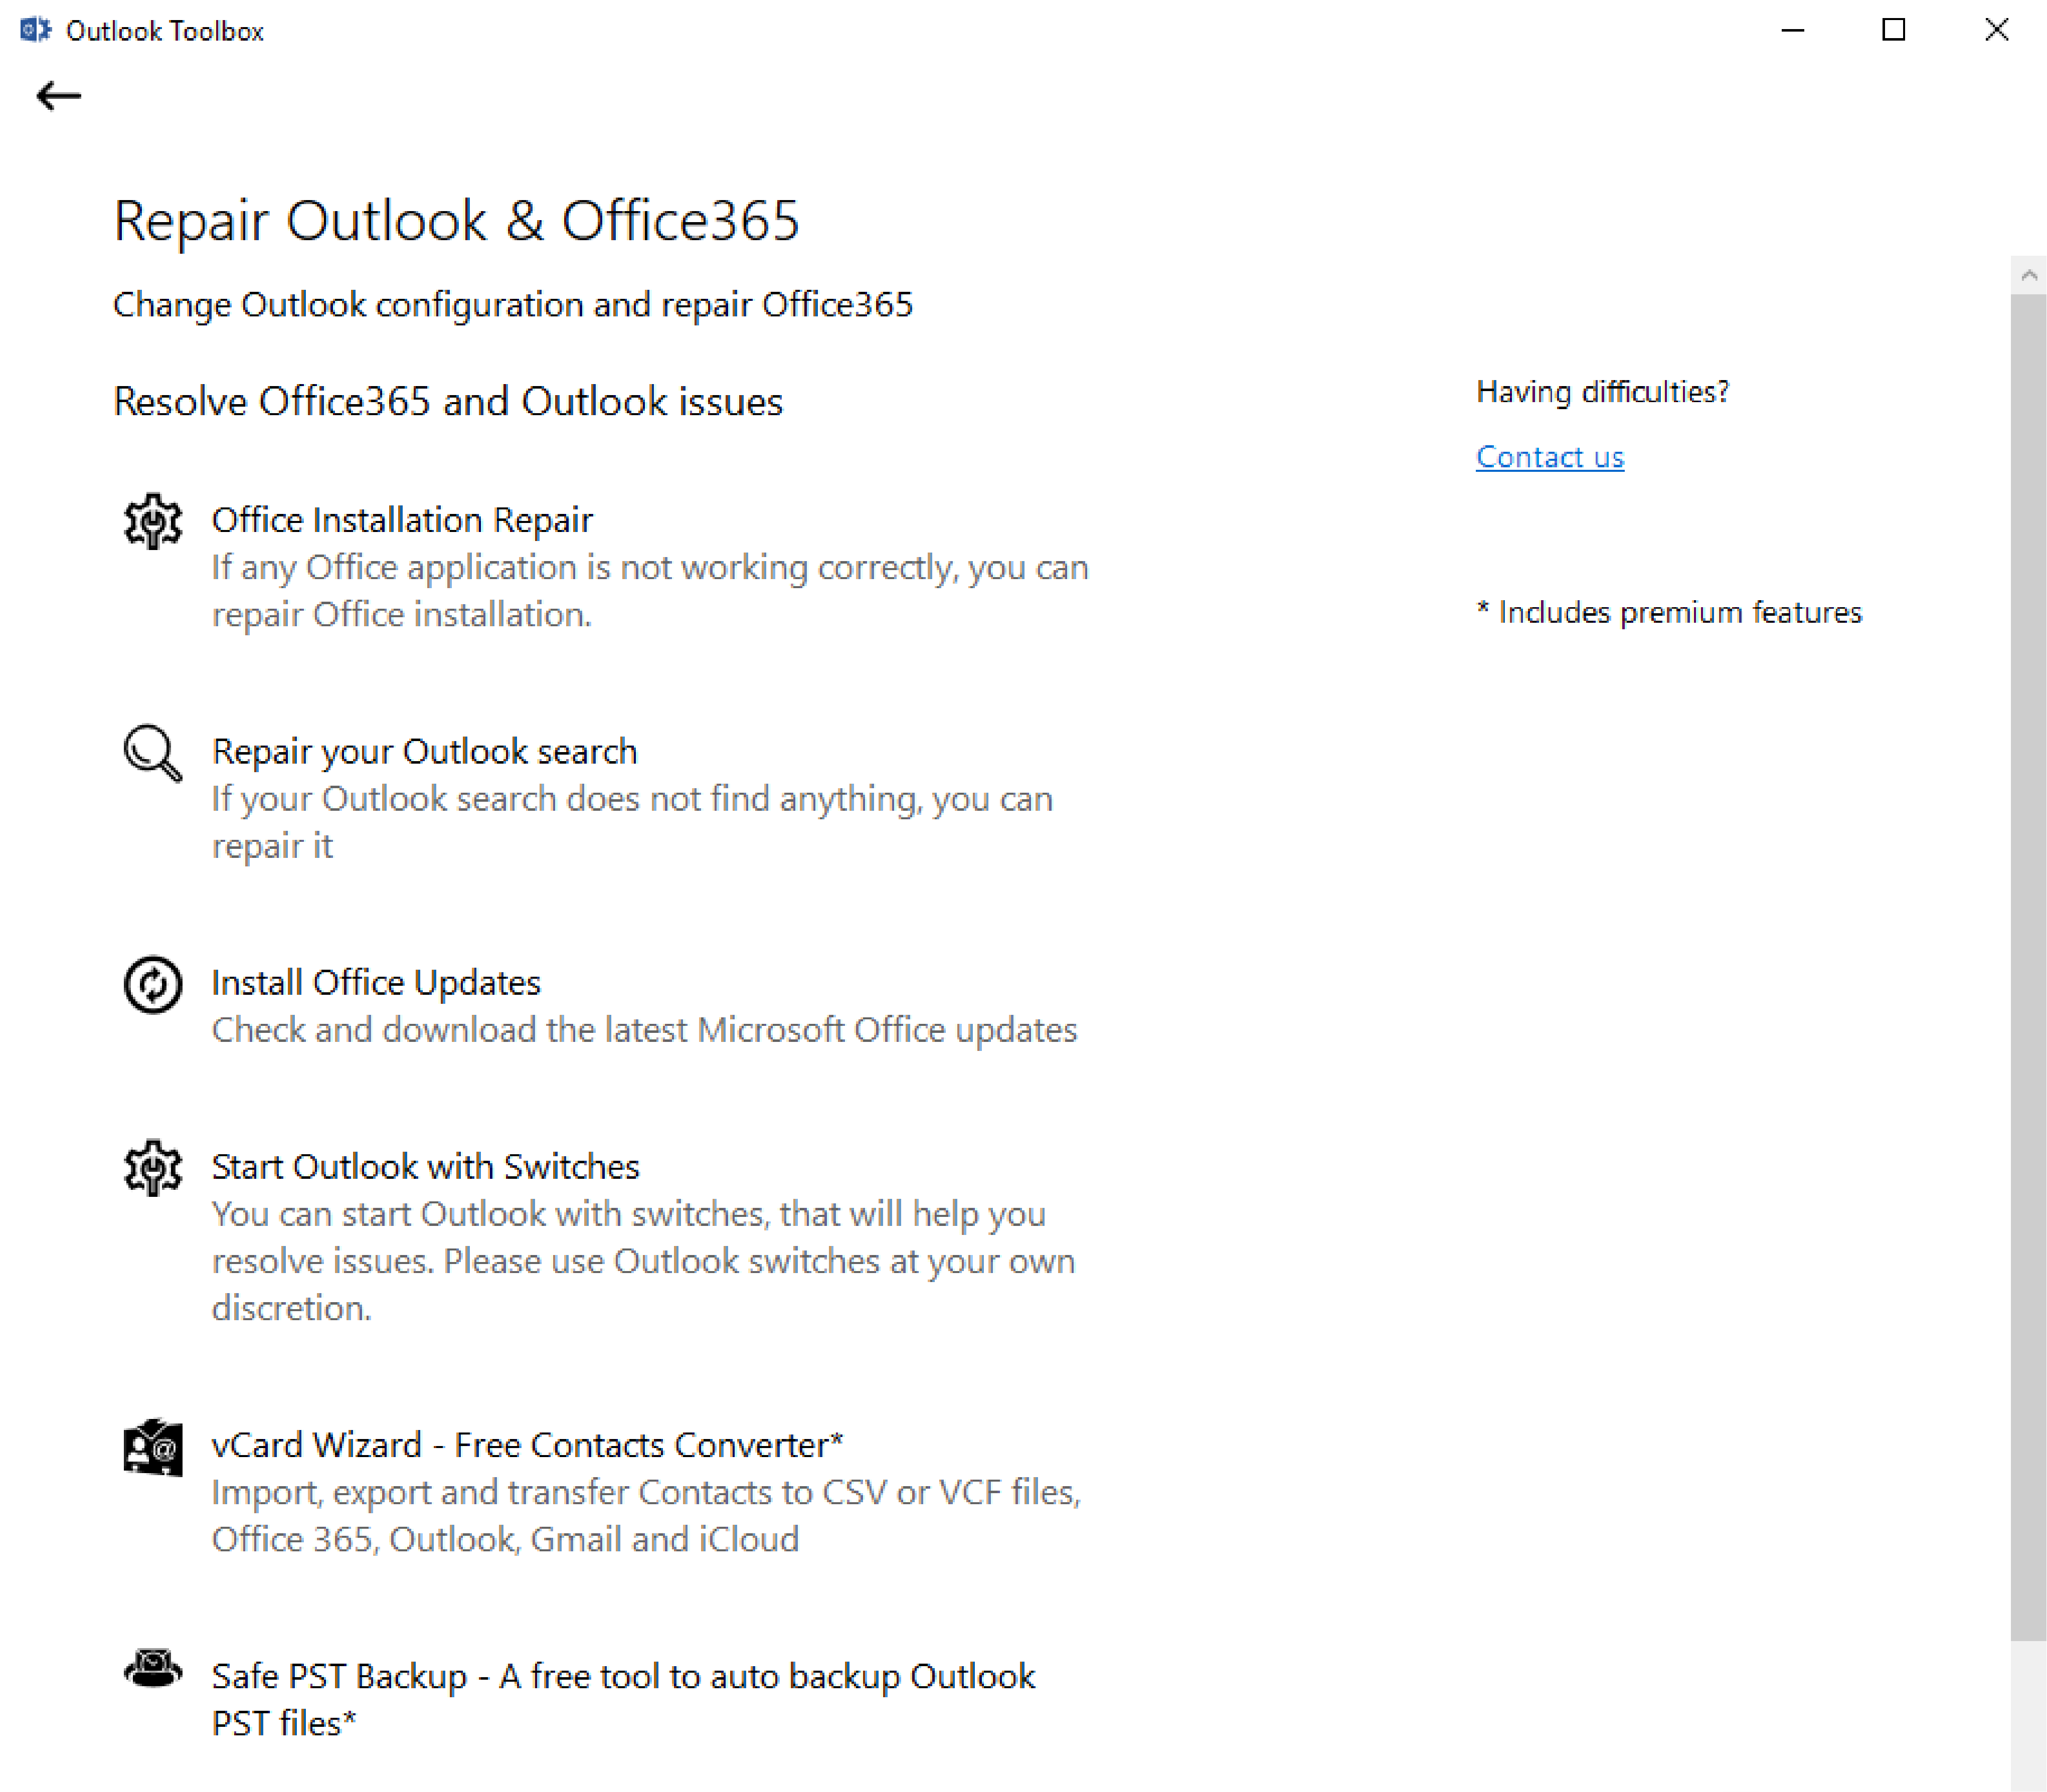 Repair Outlook and Office365